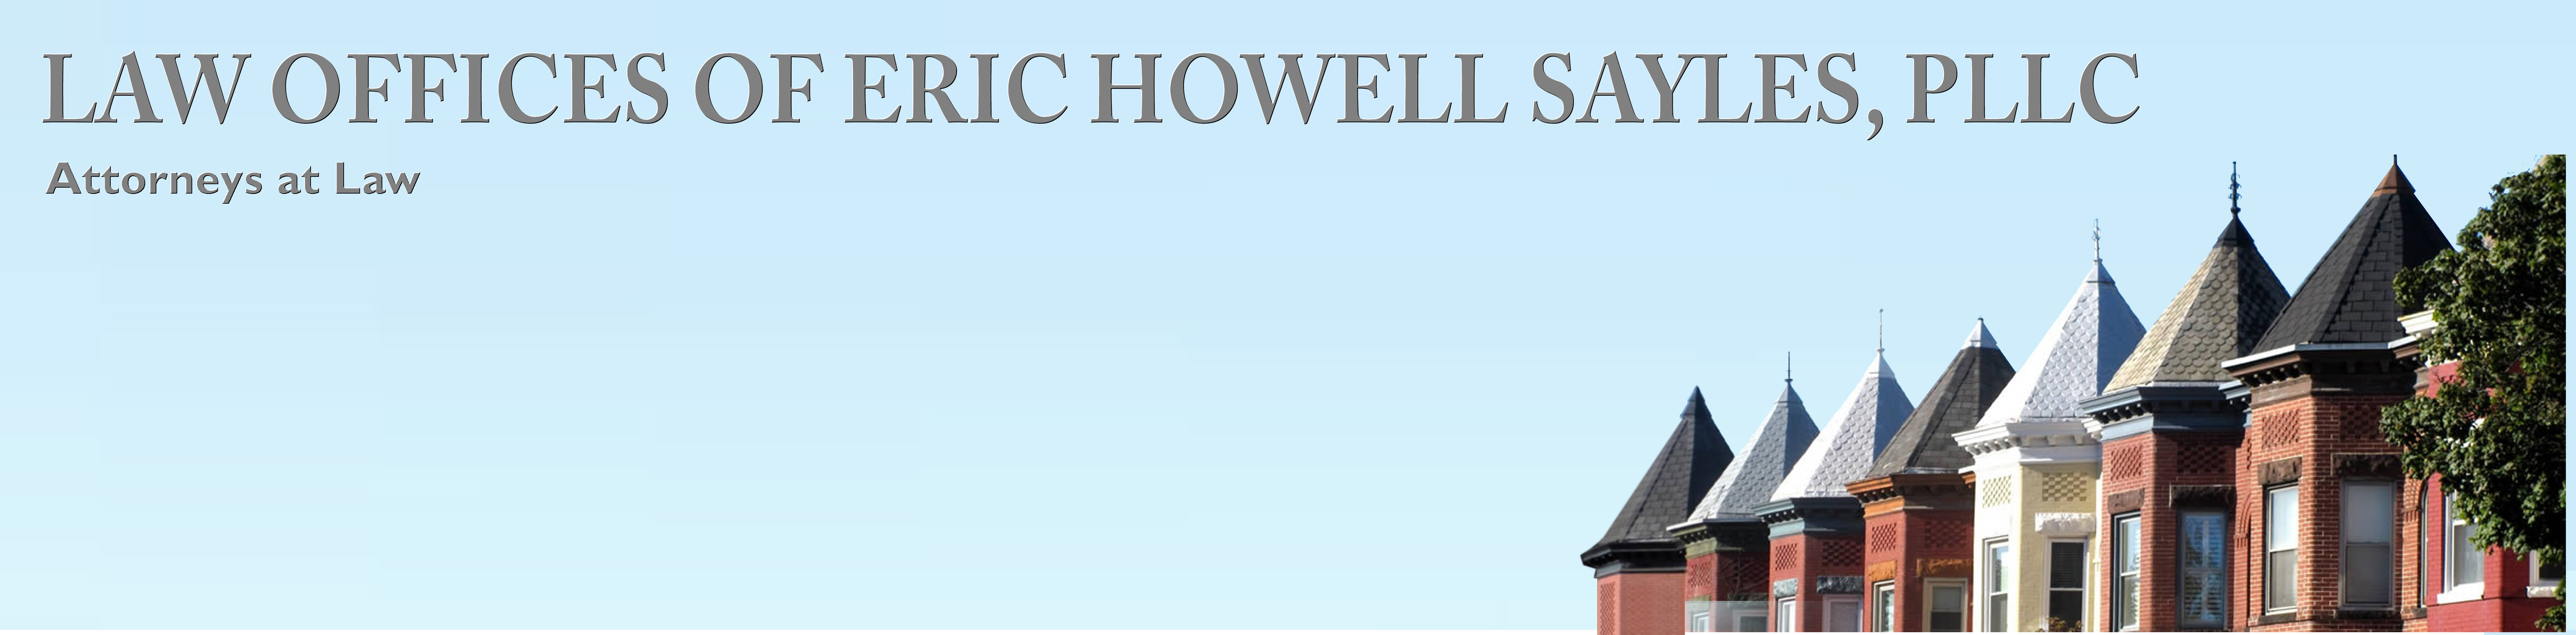 LAW OFFICES OF ERIC HOWELL SAYLES, PLLC